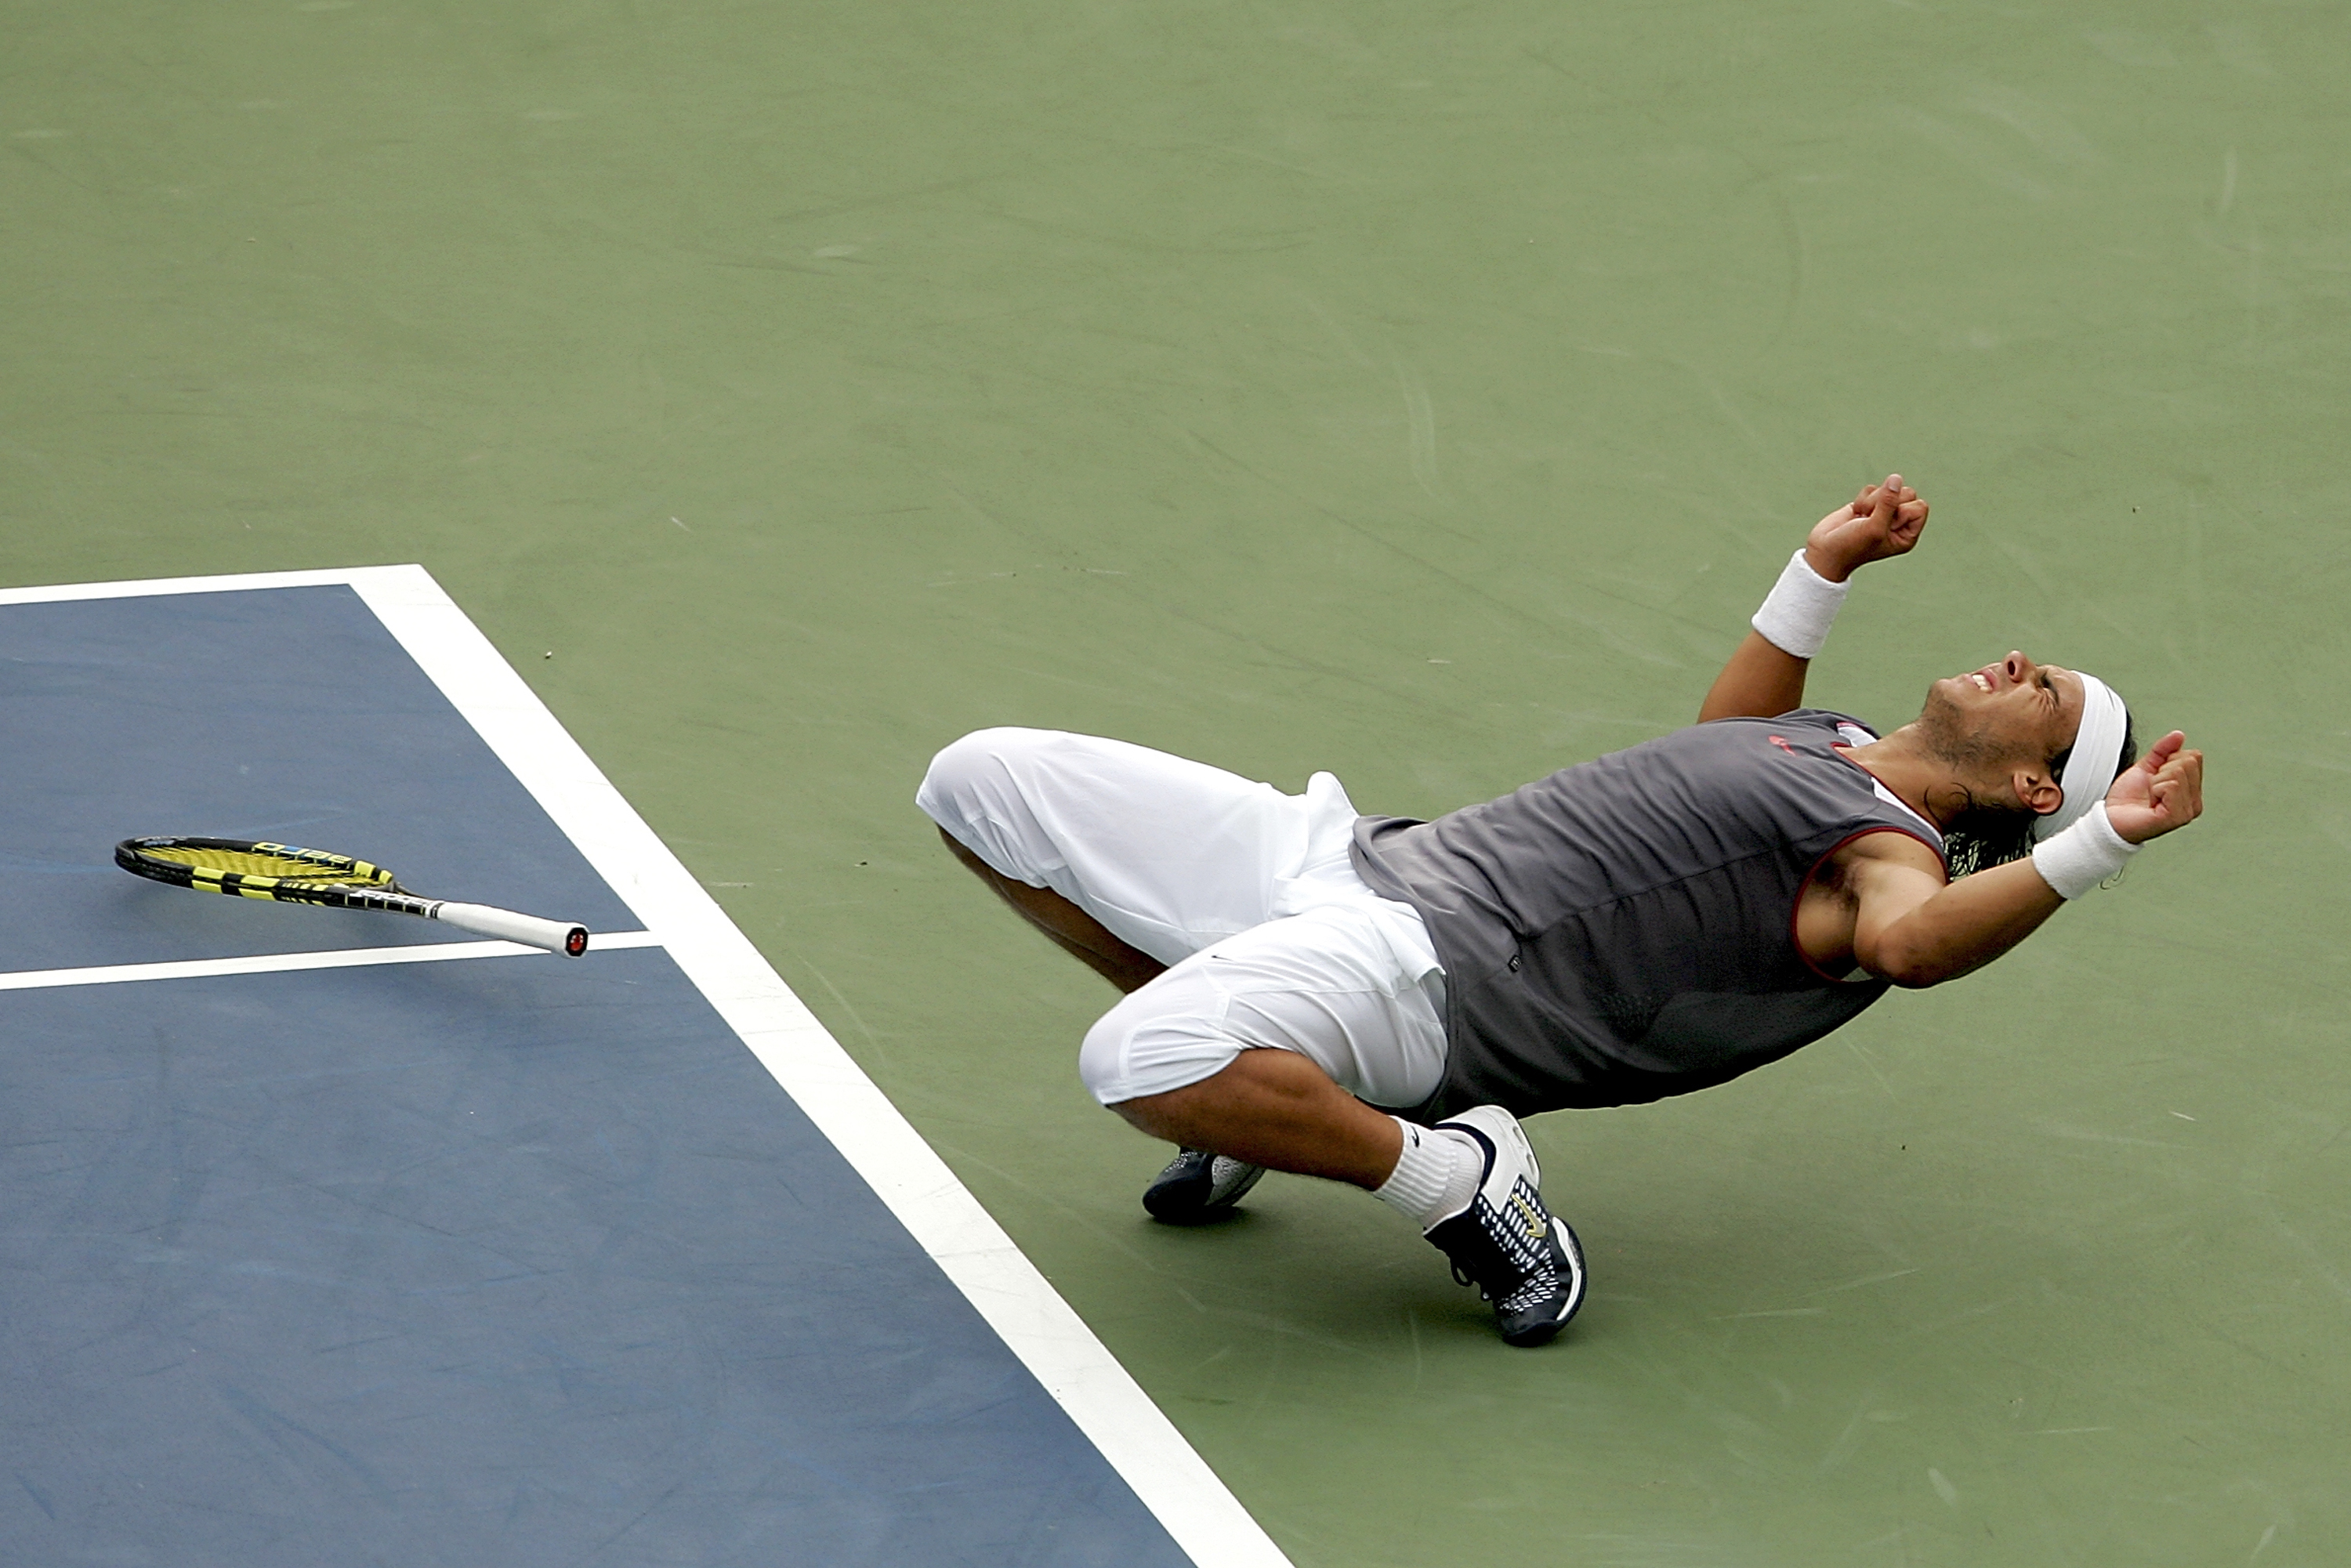 Nadal sported a rare monochrome top for his win over Andre Agassi in the final of the Rogers Cup.